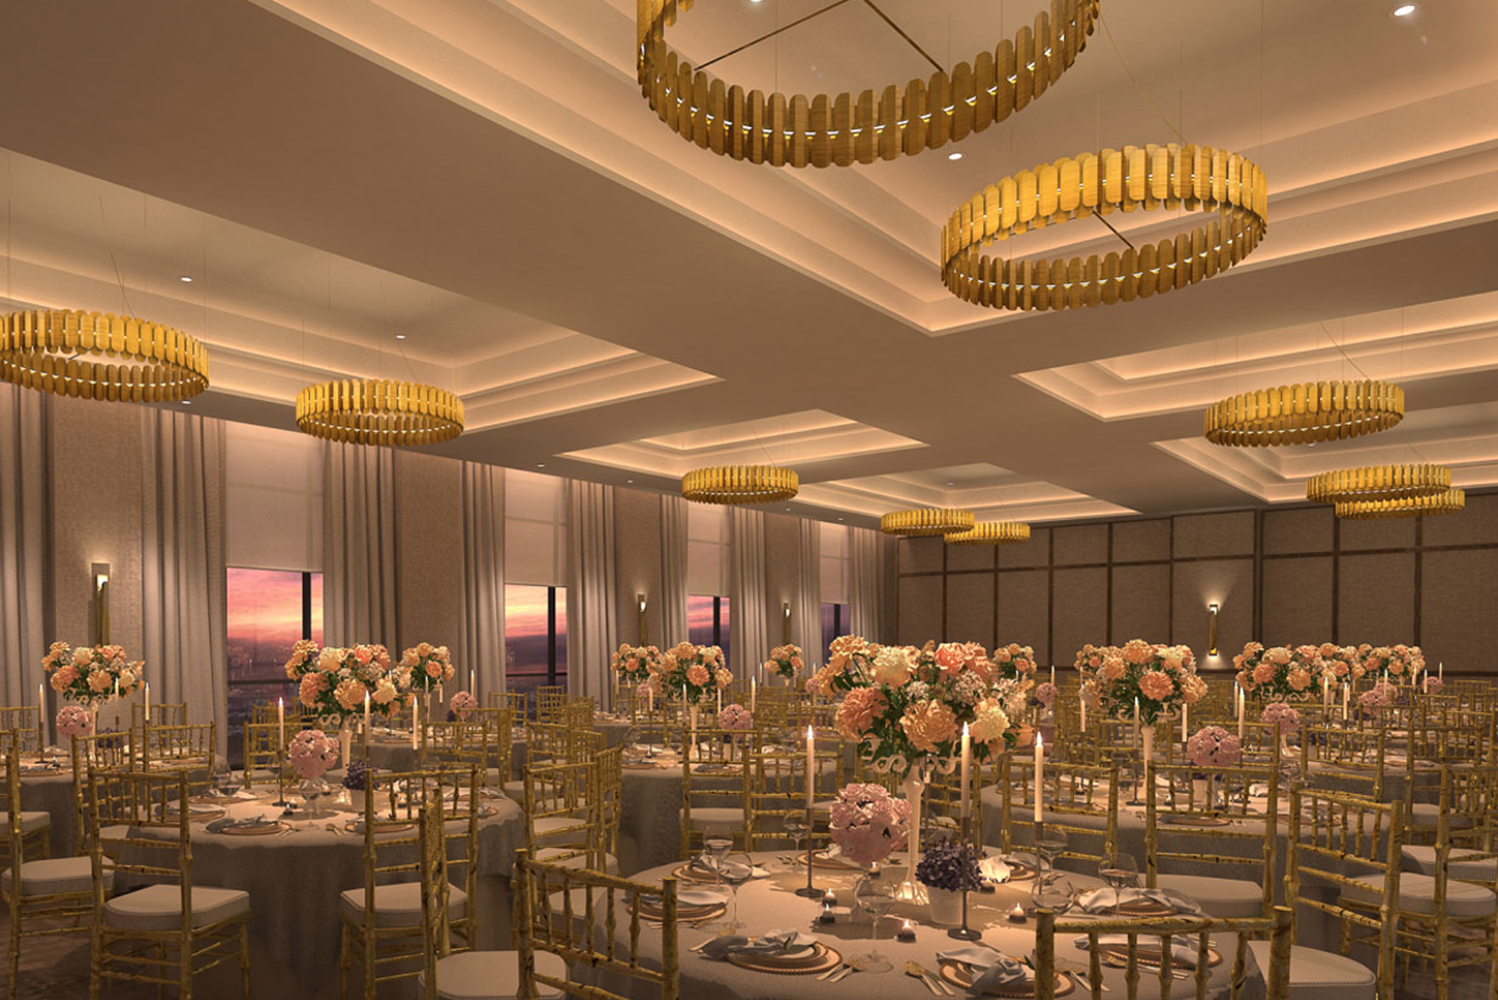 For events, the property will have 9,000 square feet of indoor event space across the fourth and fifth floors.